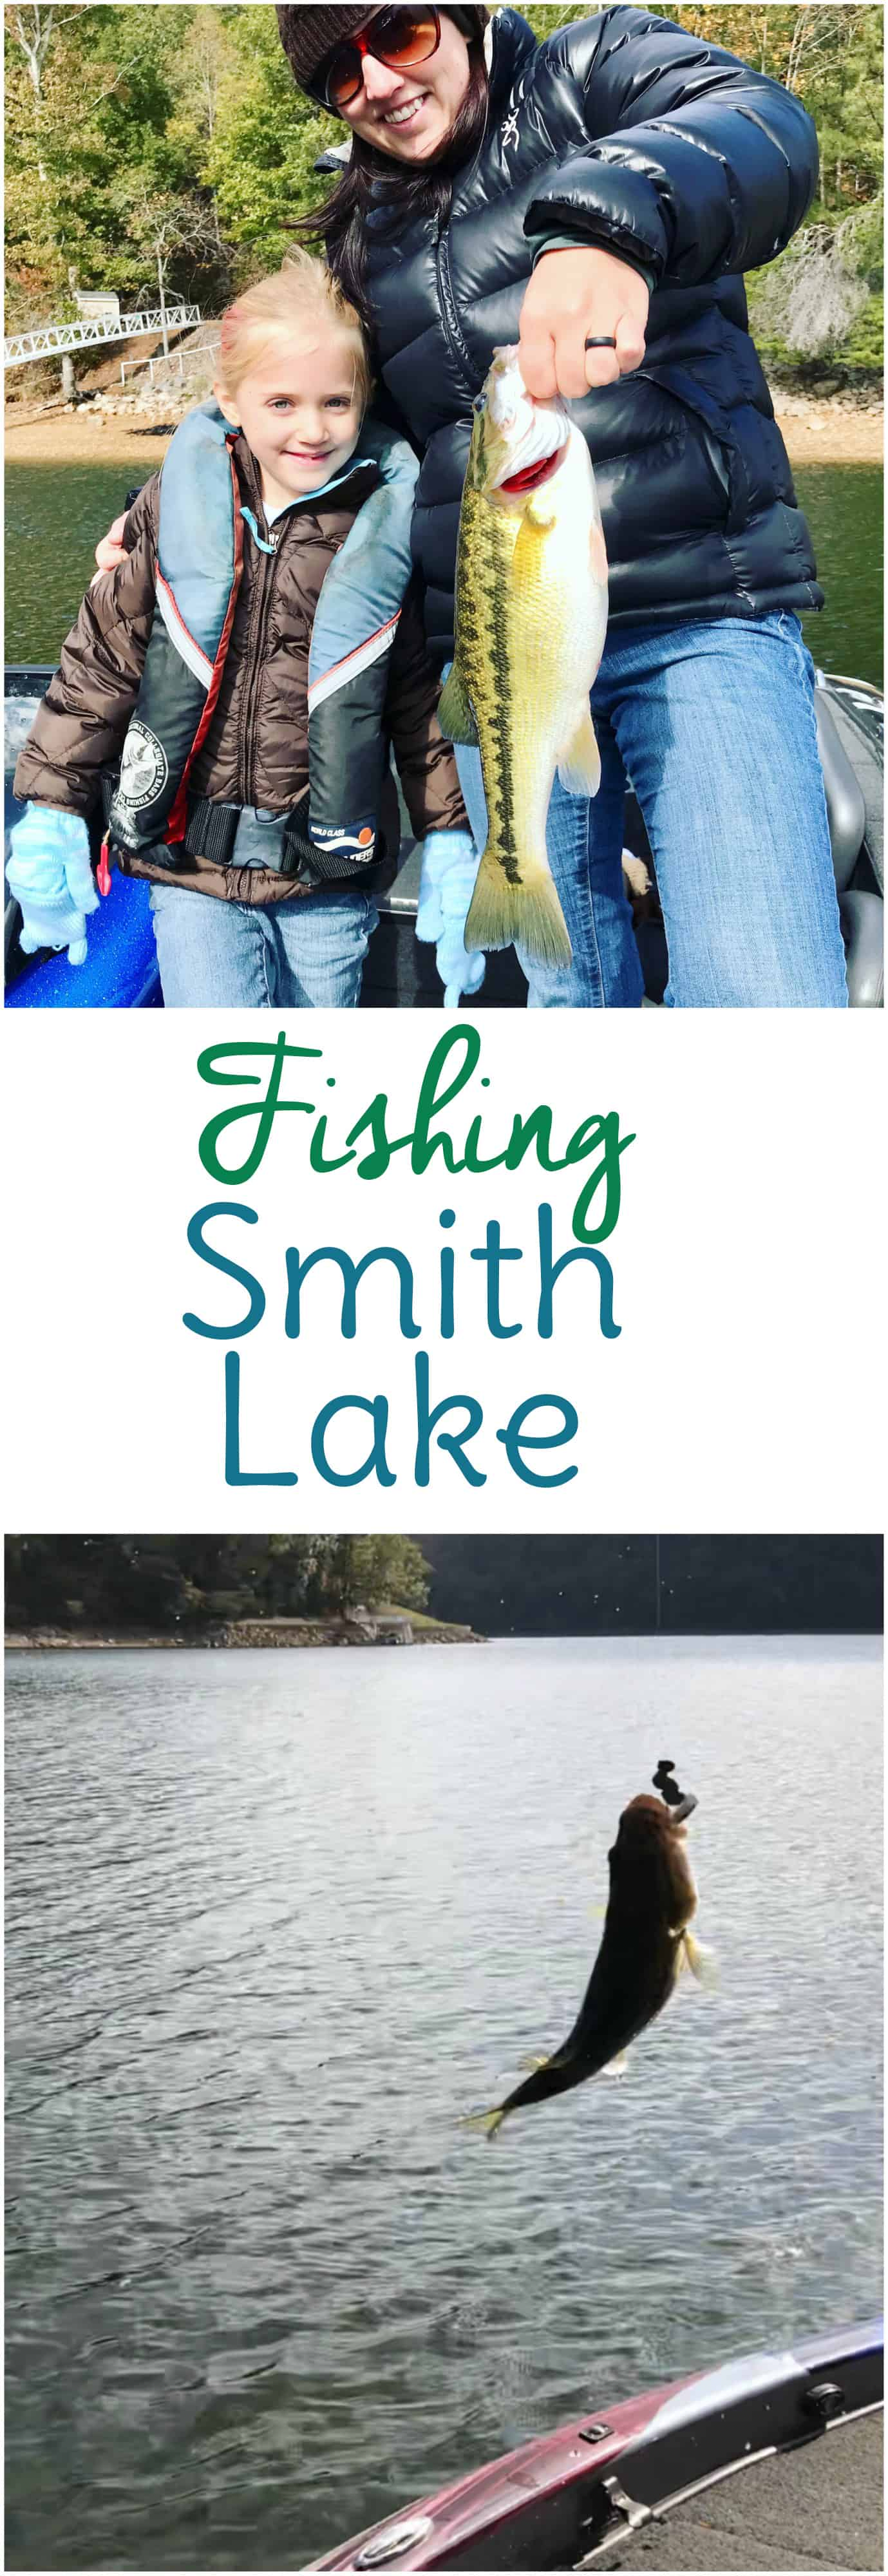 Smith Lake fishing and camping is fun for the whole family! Part of the Alabama Bass Trail, there's bass fishing and a whole lot more.